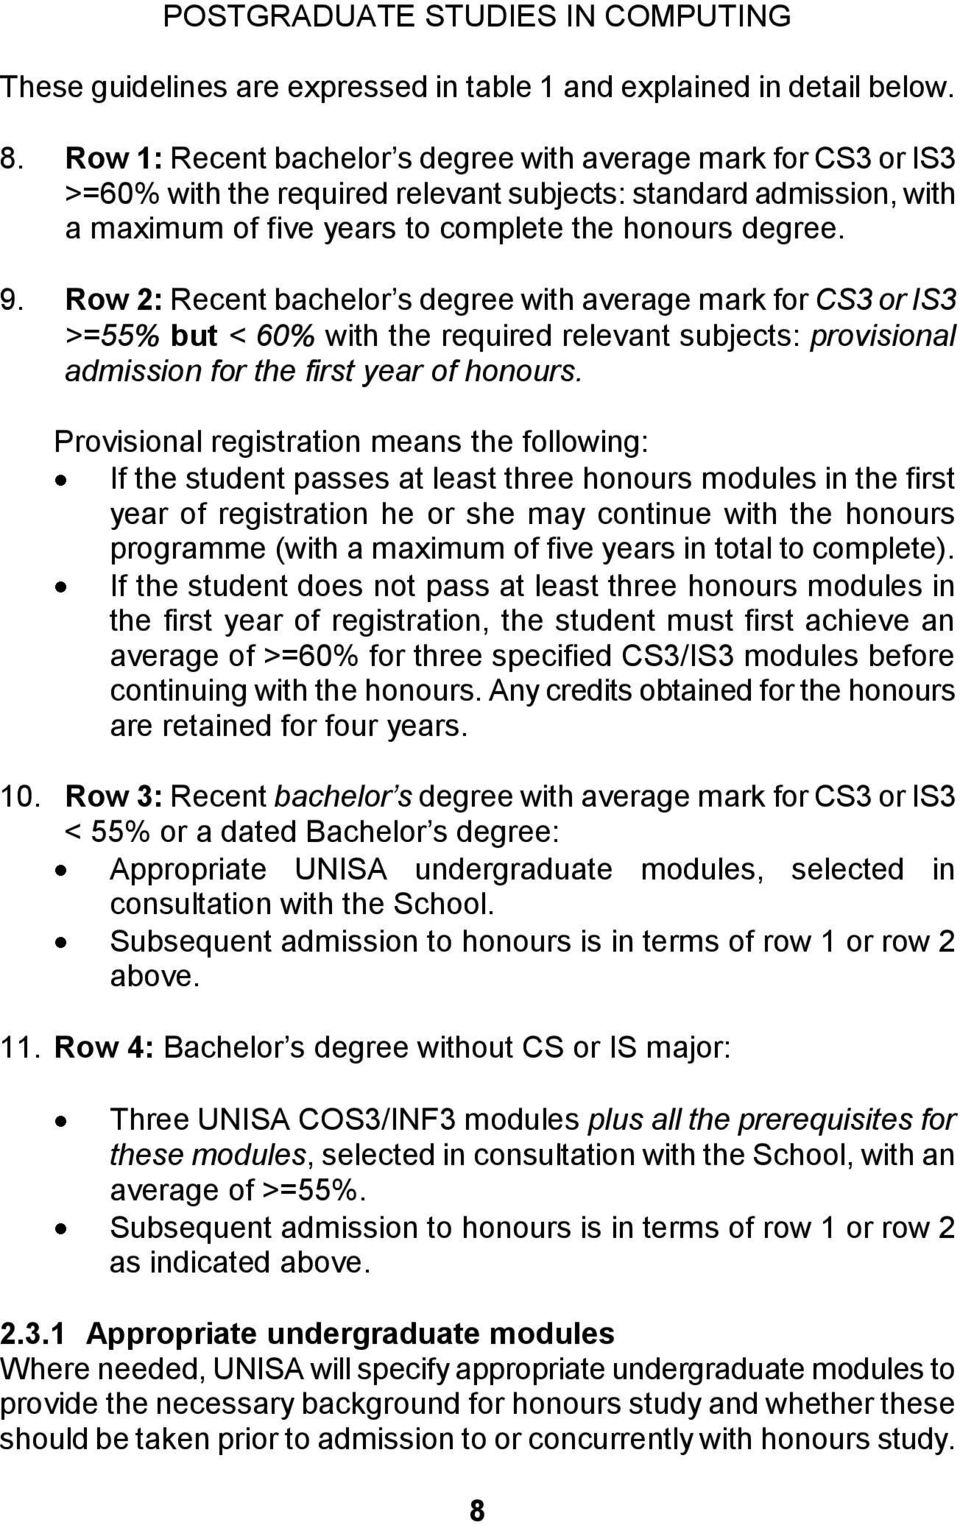 Row 2: Recent bachelor s degree with average mark for CS3 or IS3 >=55% but < 60% with the required relevant subjects: provisional admission for the first year of honours.